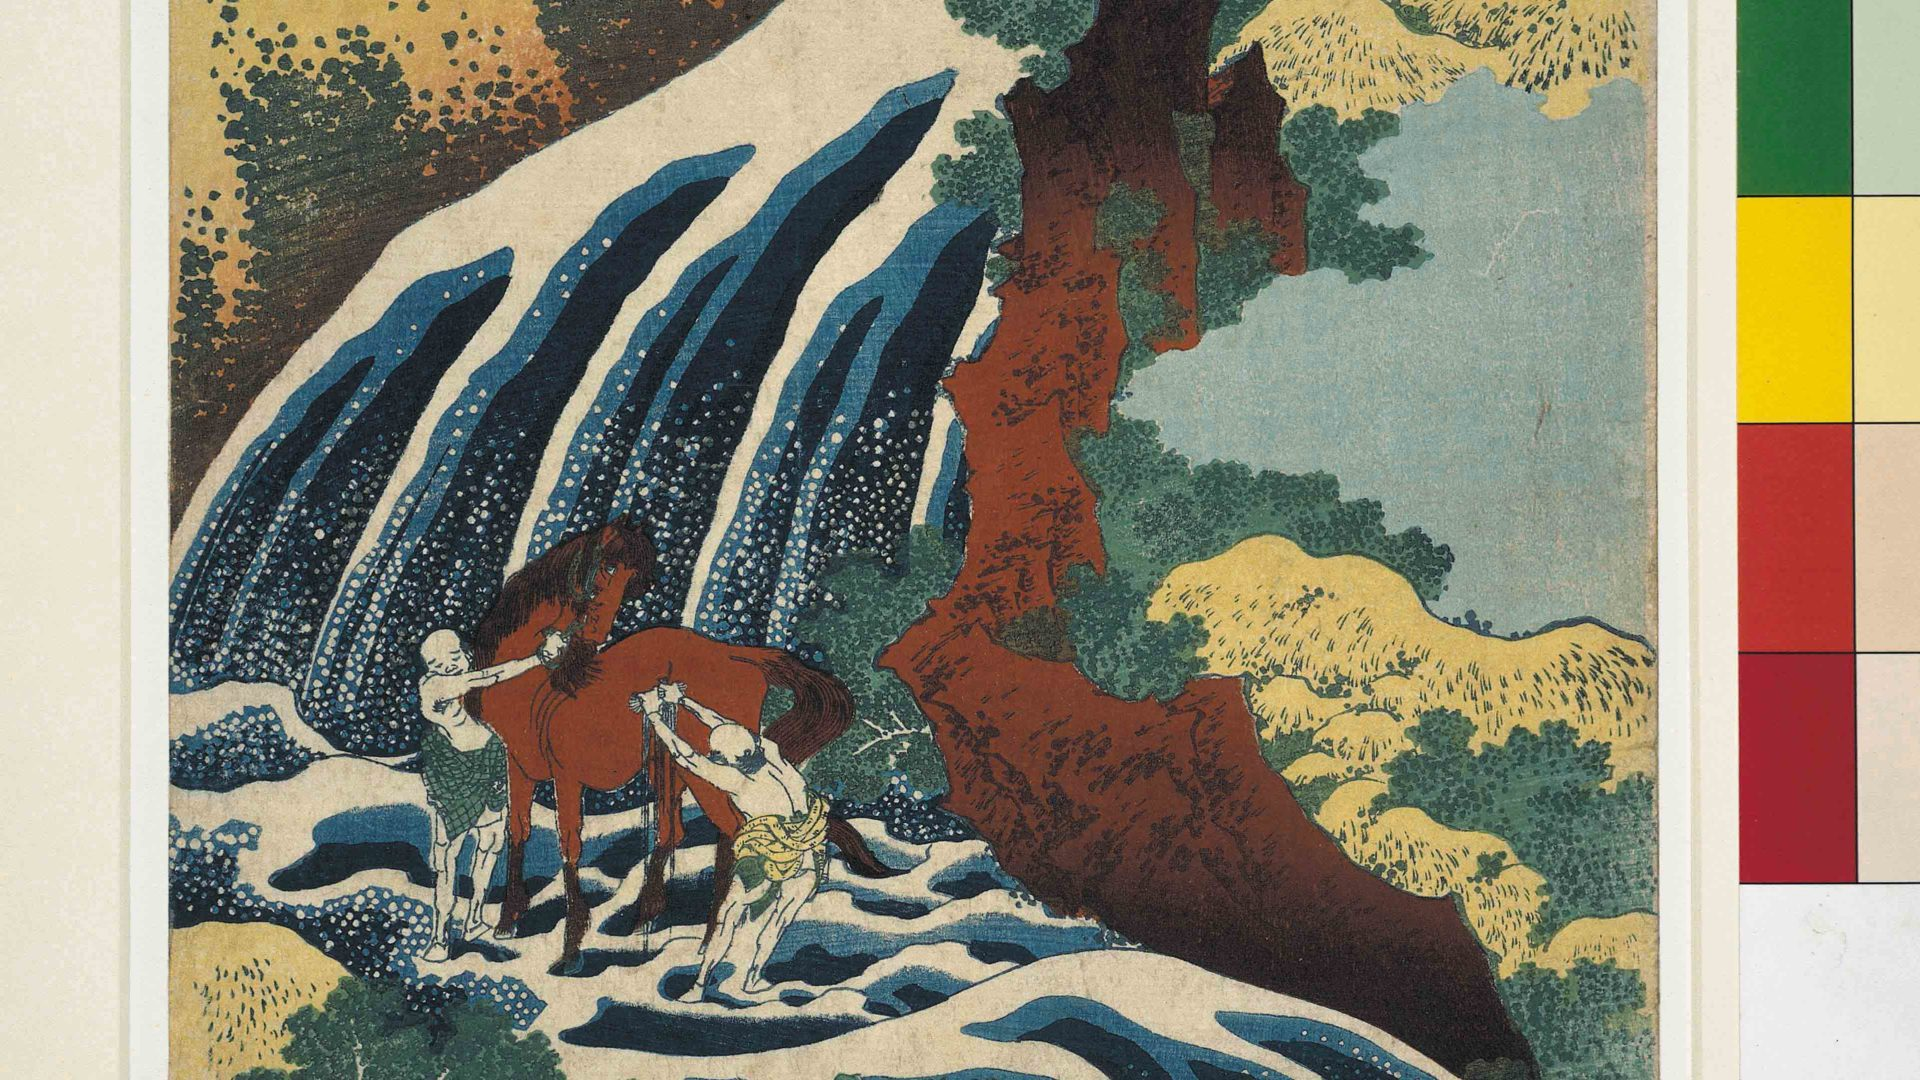 The waterfall where Yoshitsune washed his horse in Yoshino, Yamato province from Tour of Waterfalls in Various Provinces. Colour woodblock, 1833. Bequeathed by Charles Shannon RA. © The Trustees of the British Museum. On display from 7 July - 13 August.